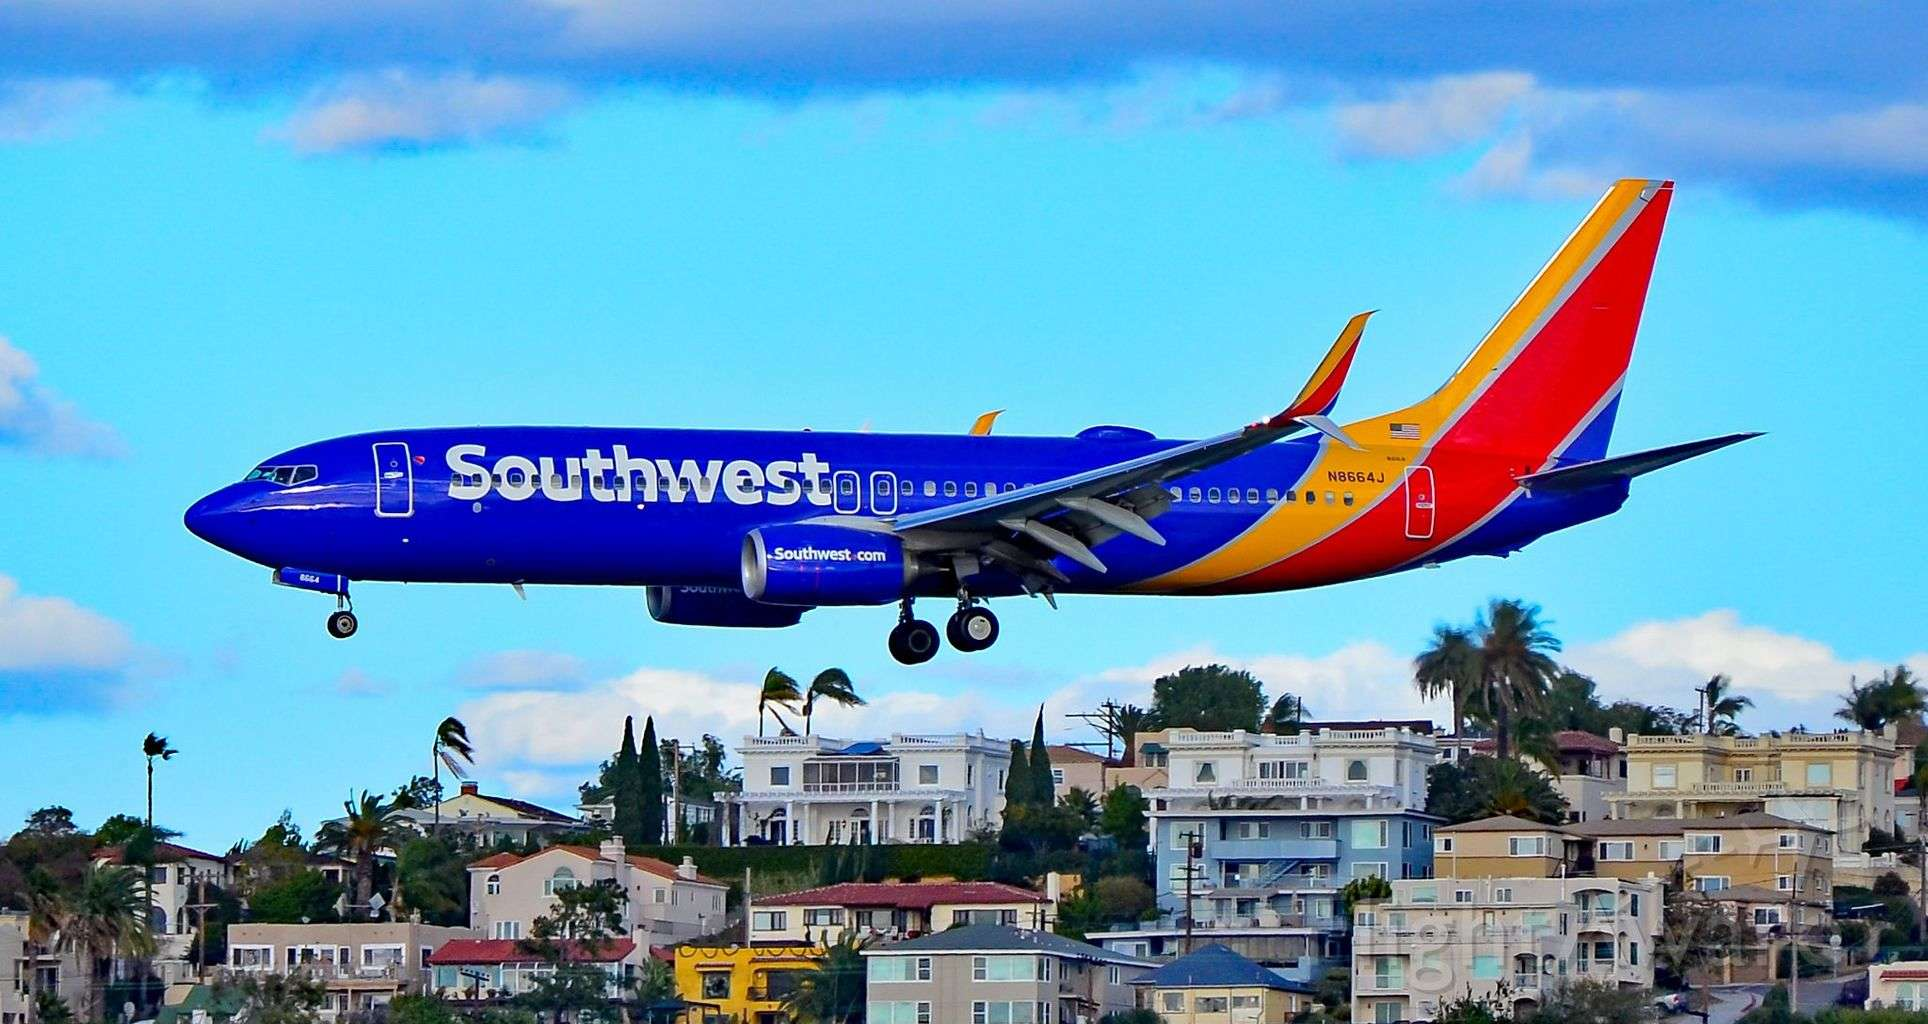 Muslim woman removed from Southwest Airlines flight